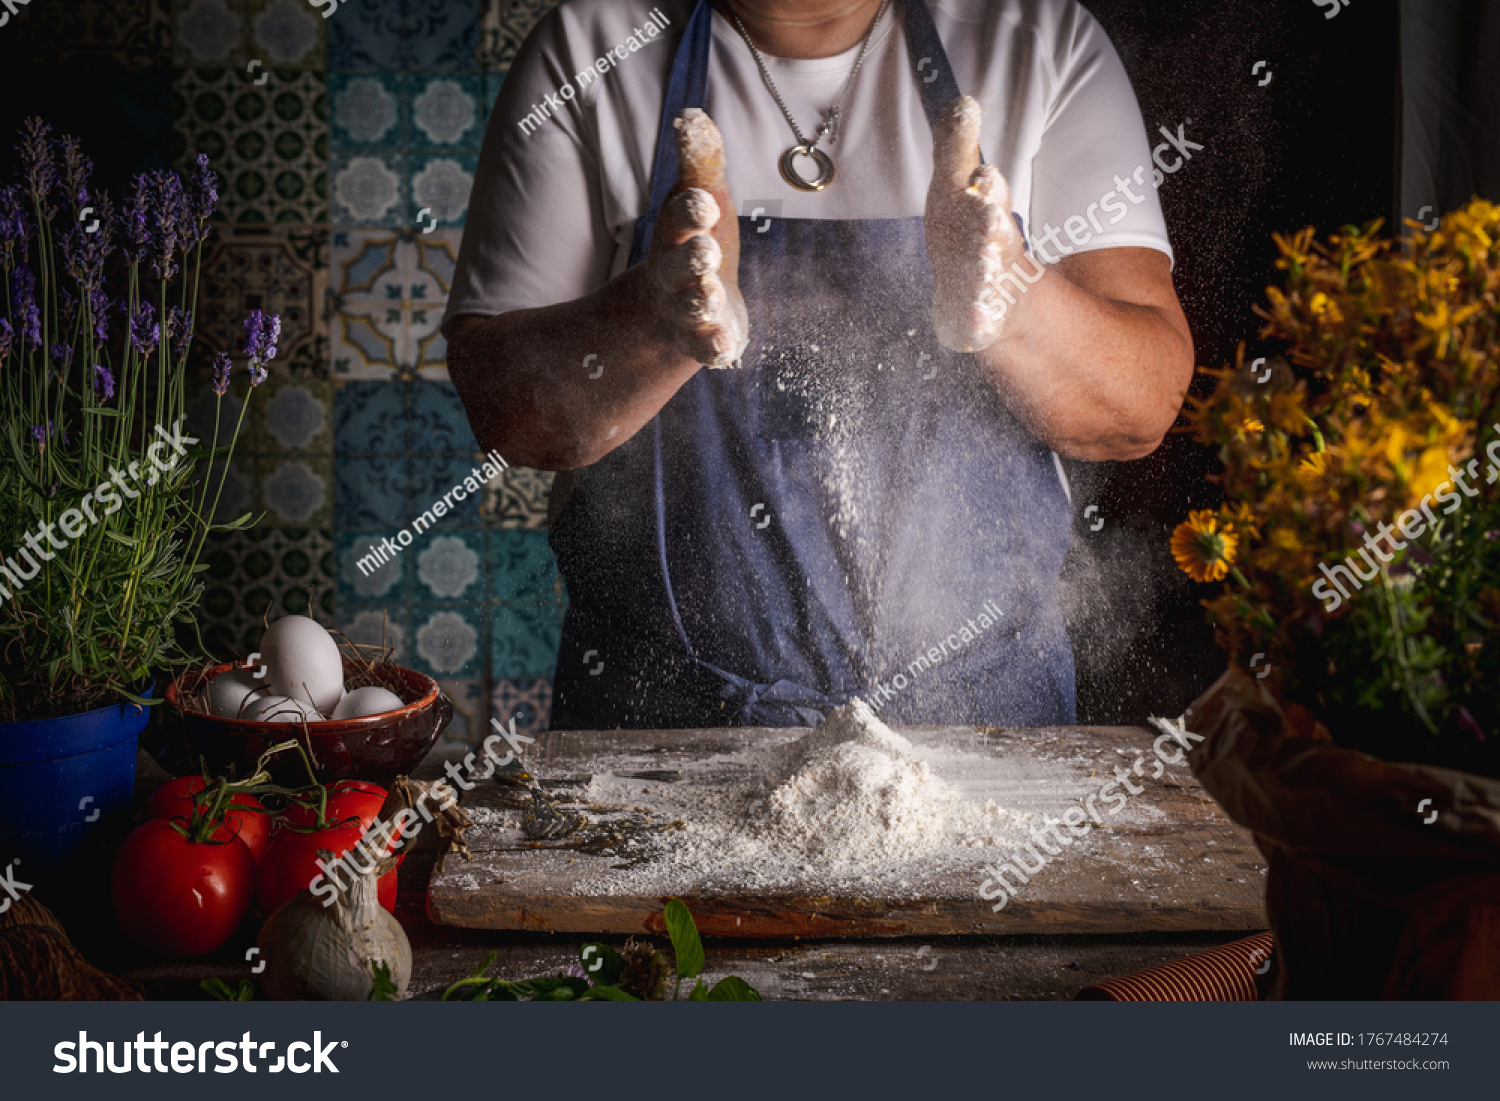 https://lnx.mirkone.it/wp-content/uploads/2016/01/stock-photo-homemade-pasta-making-process-cleaning-hands-from-flour-the-chef-makes-traditional-italian-fresh-1767484274.jpg